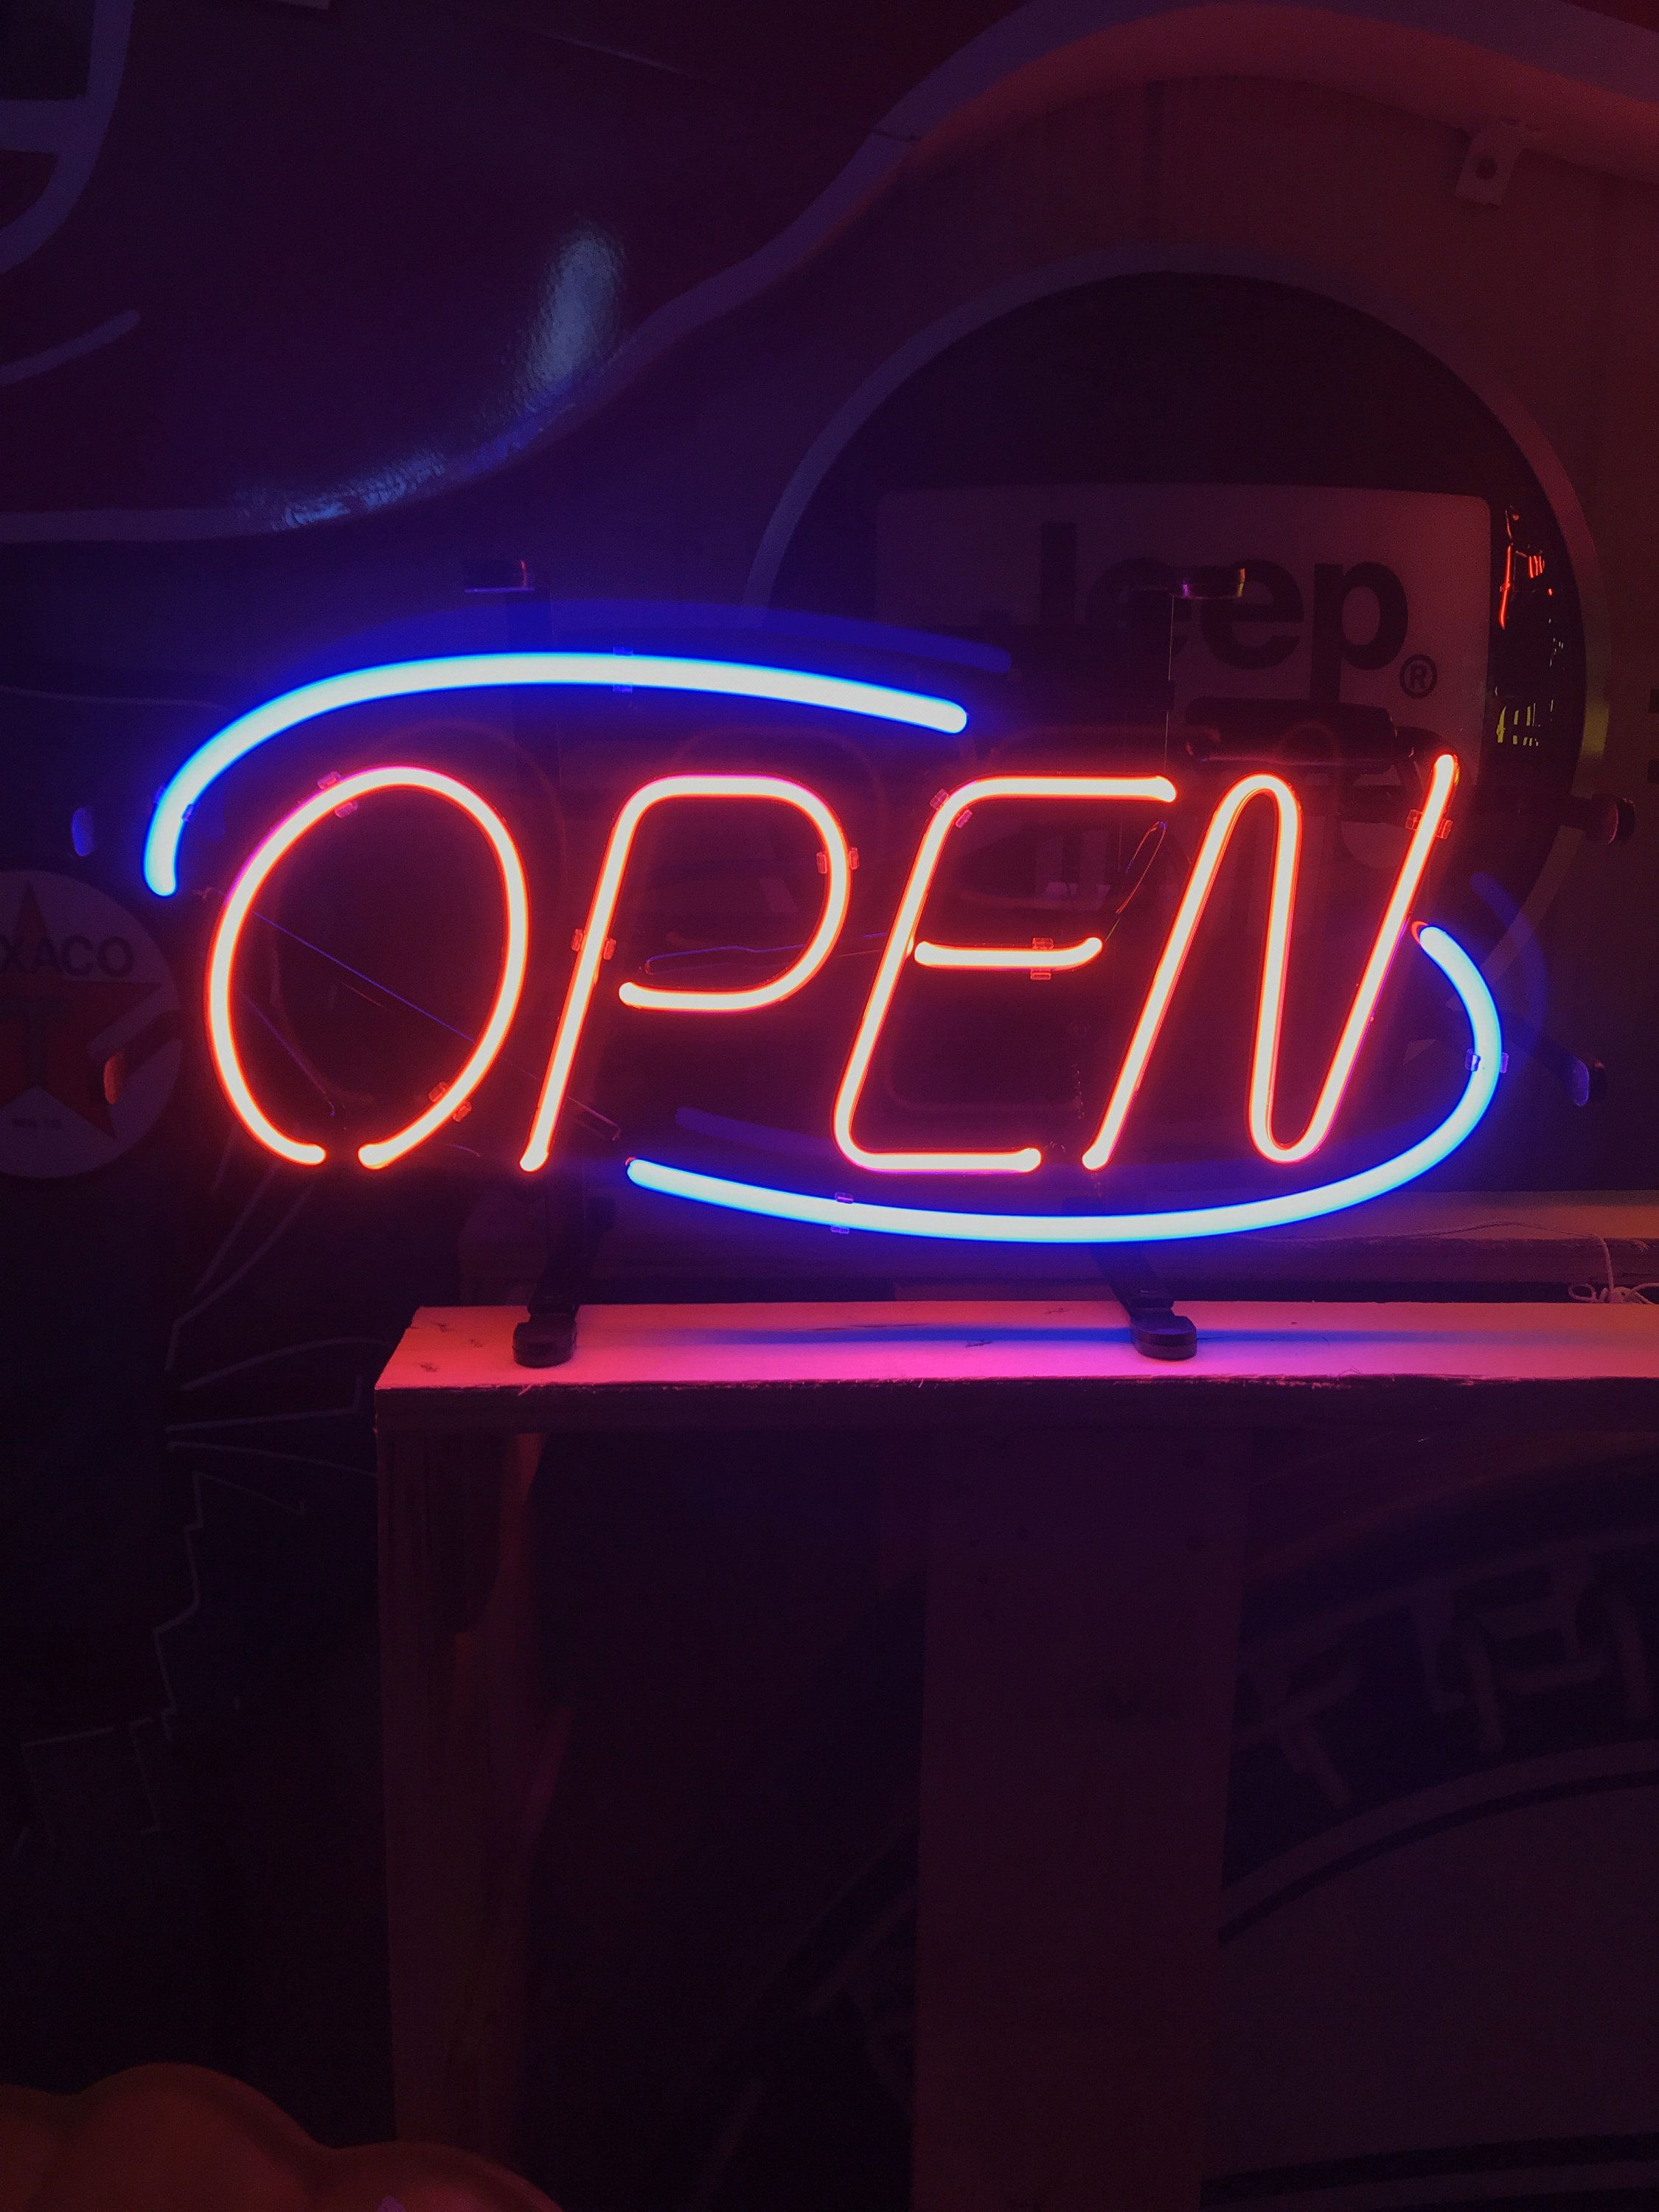 Open Sign Open Neon Signs Open Light Up Signs Light Up Etsy In 2020 Neon Signs Light Up Signs Open Signs